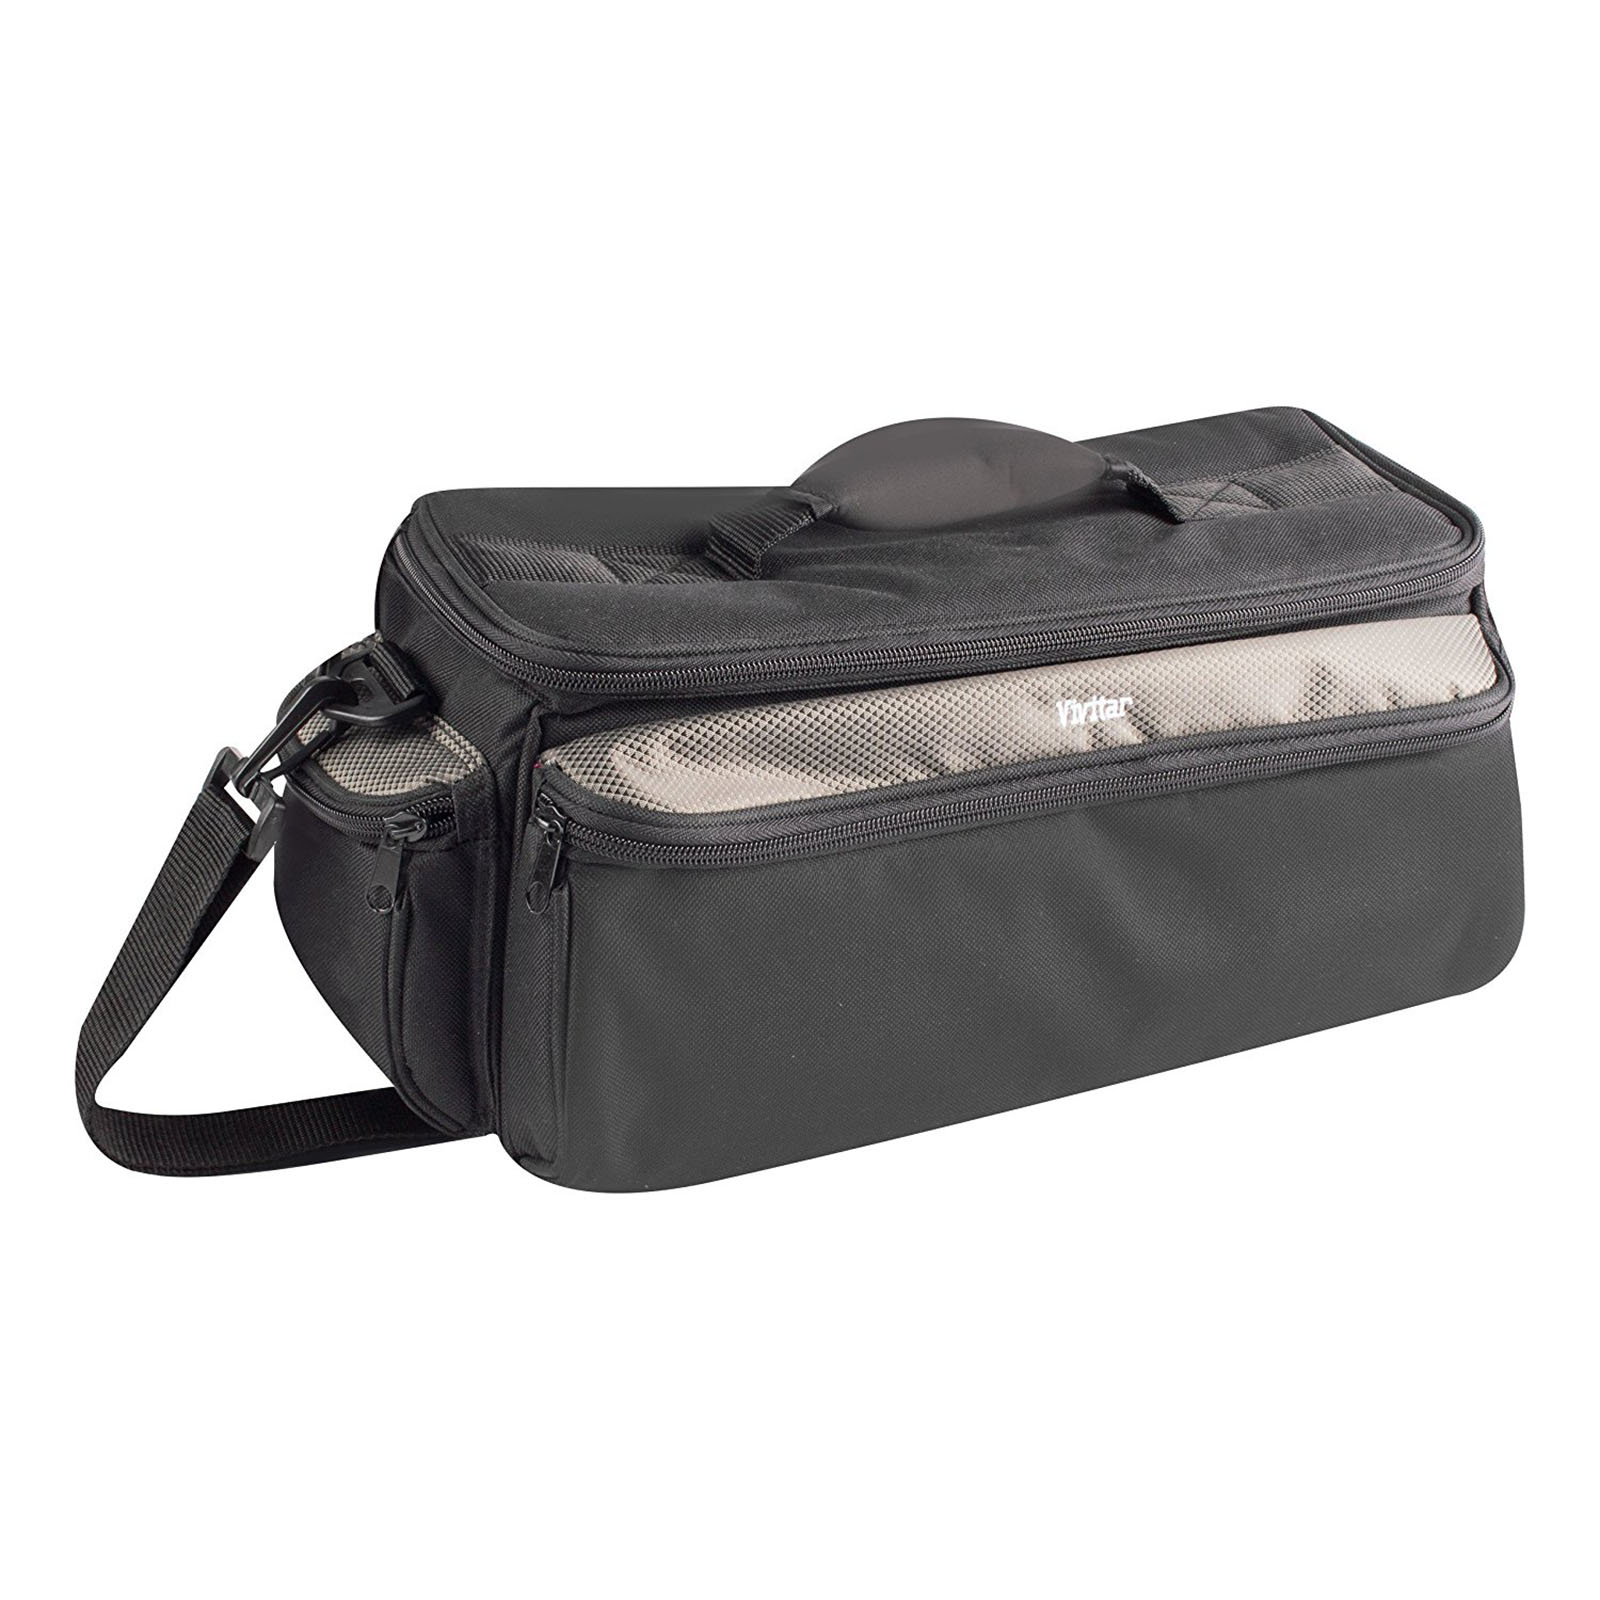 Vivitar Rugged Pro Extra Large Camcorder Case